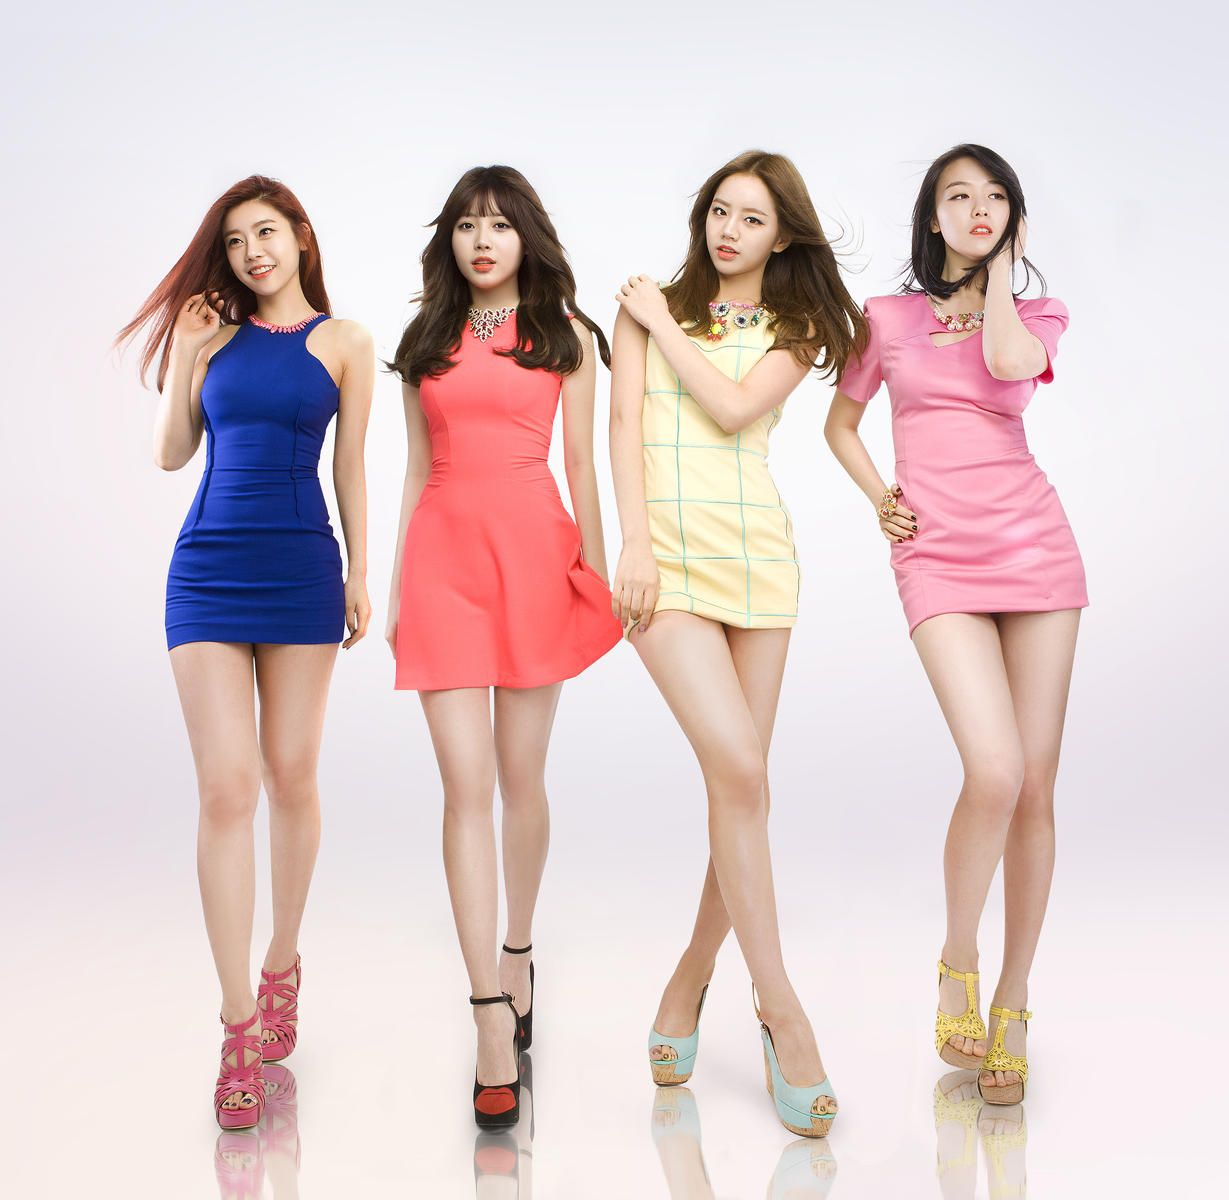 Girl's Day 기대해 Expectation #KPOP #GirlsDay